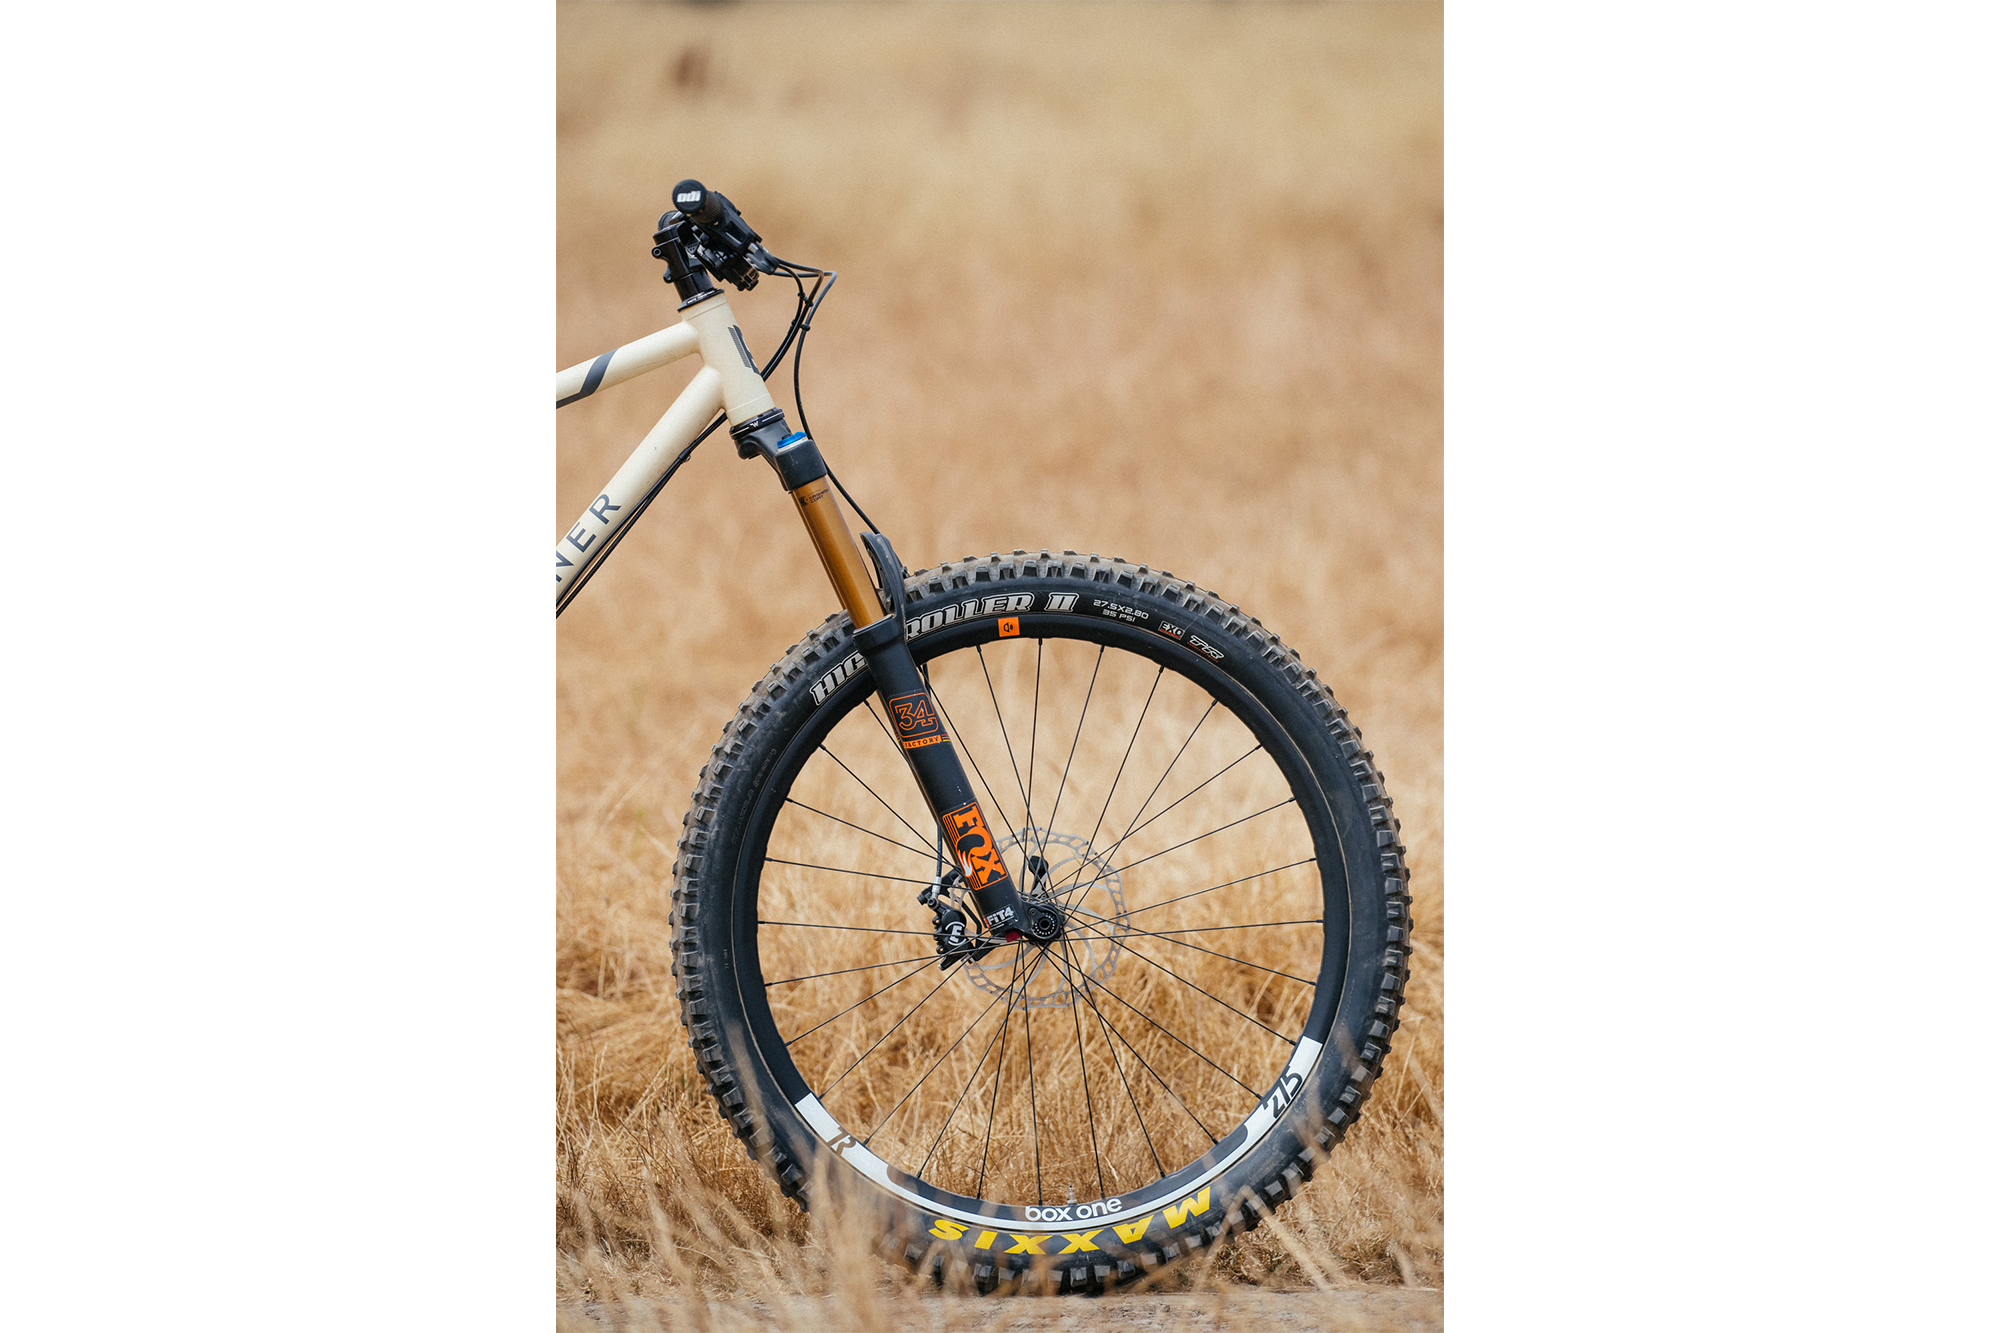 F*ck Yeah Desert Tan Stinner Hardtail with Box Components